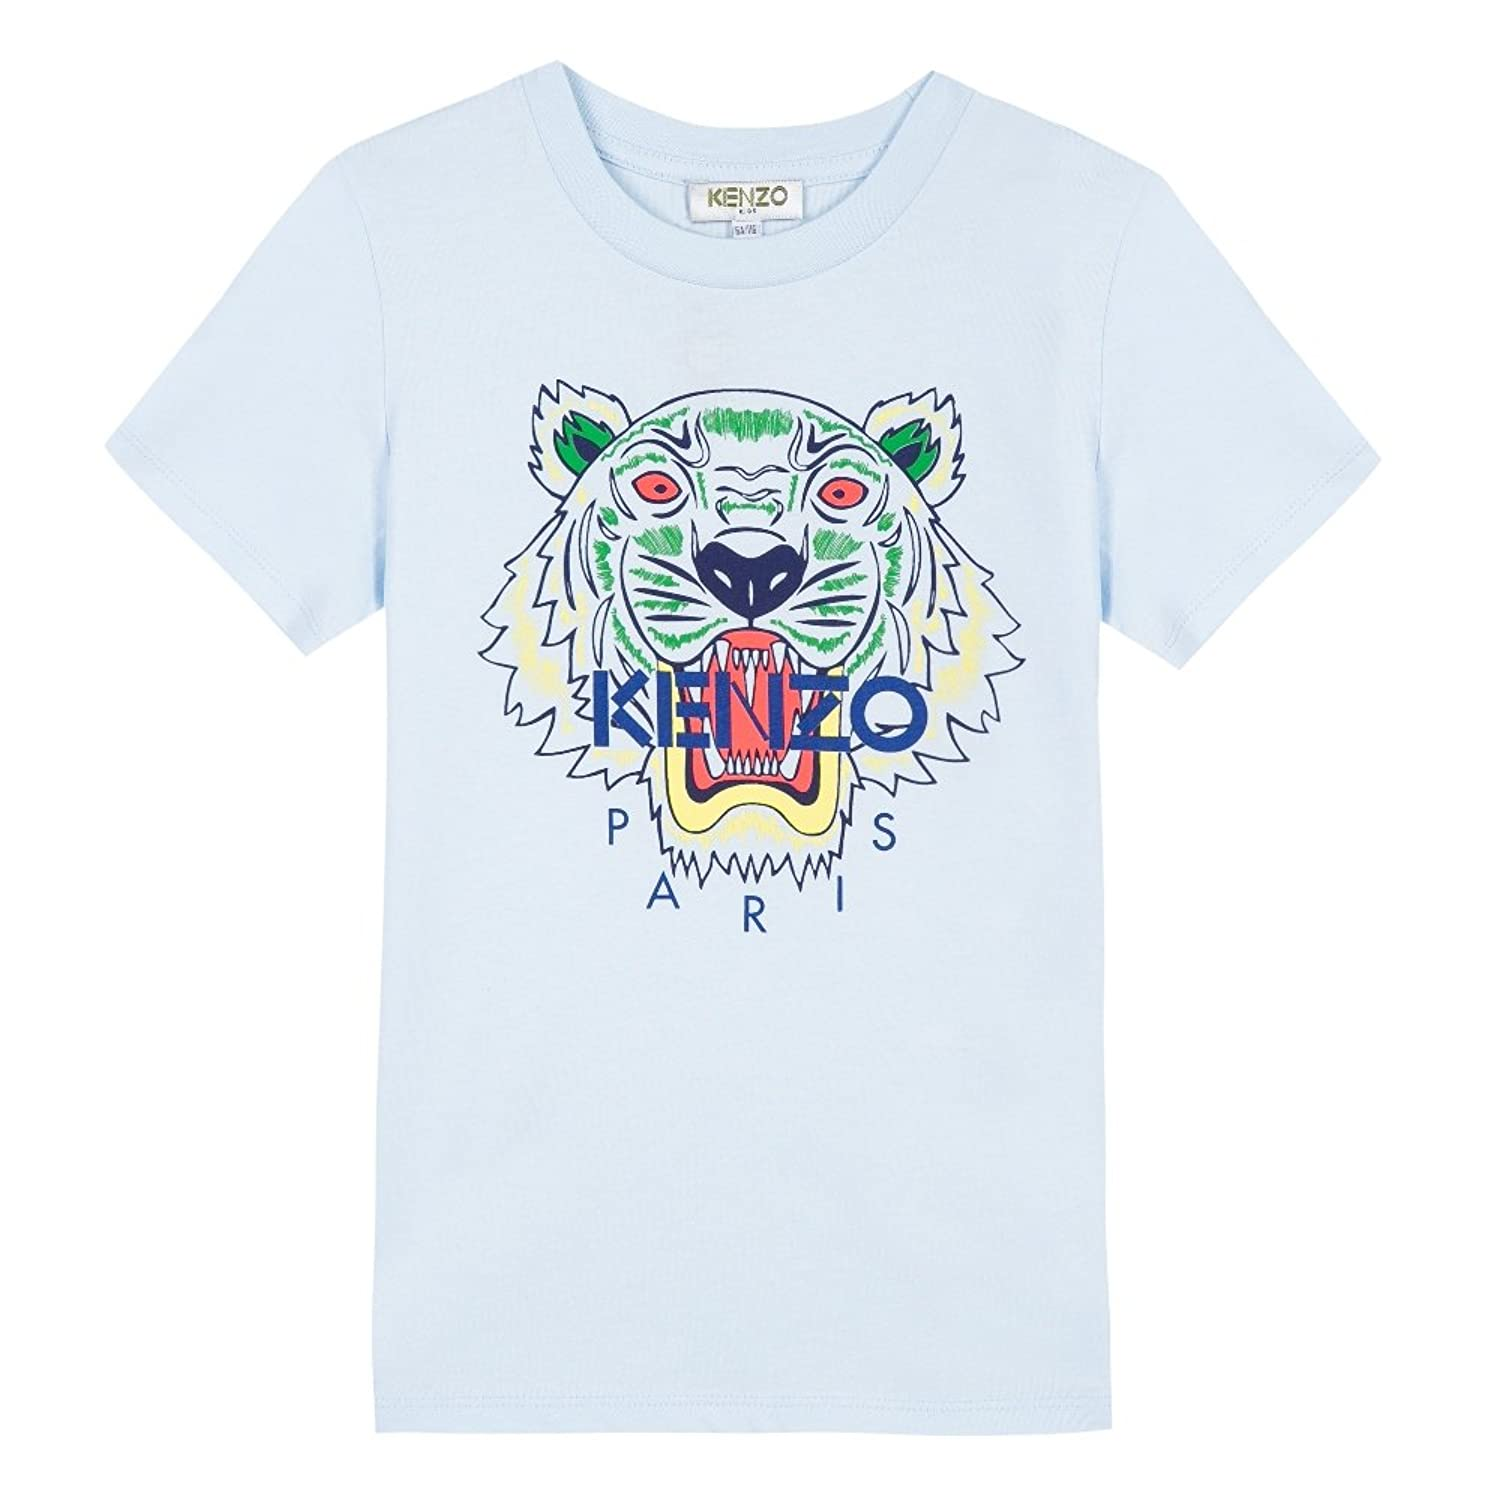 8fba894c Chinabrands.com: Dropshipping & Wholesale cheap Kenzo Kids Tiger T ...